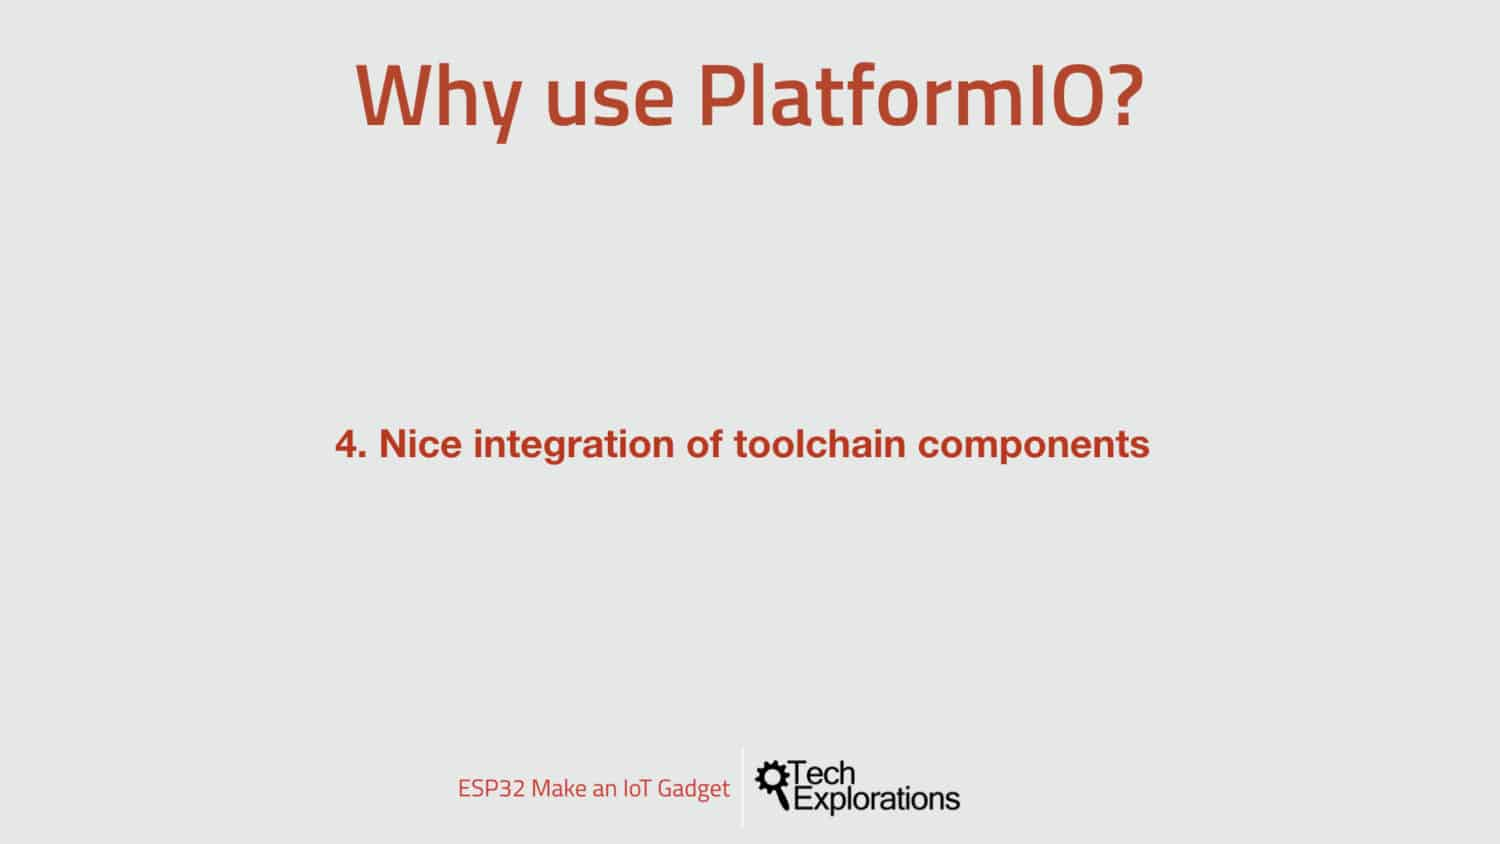 Reason 4: the amazing integration of the toolchain components.